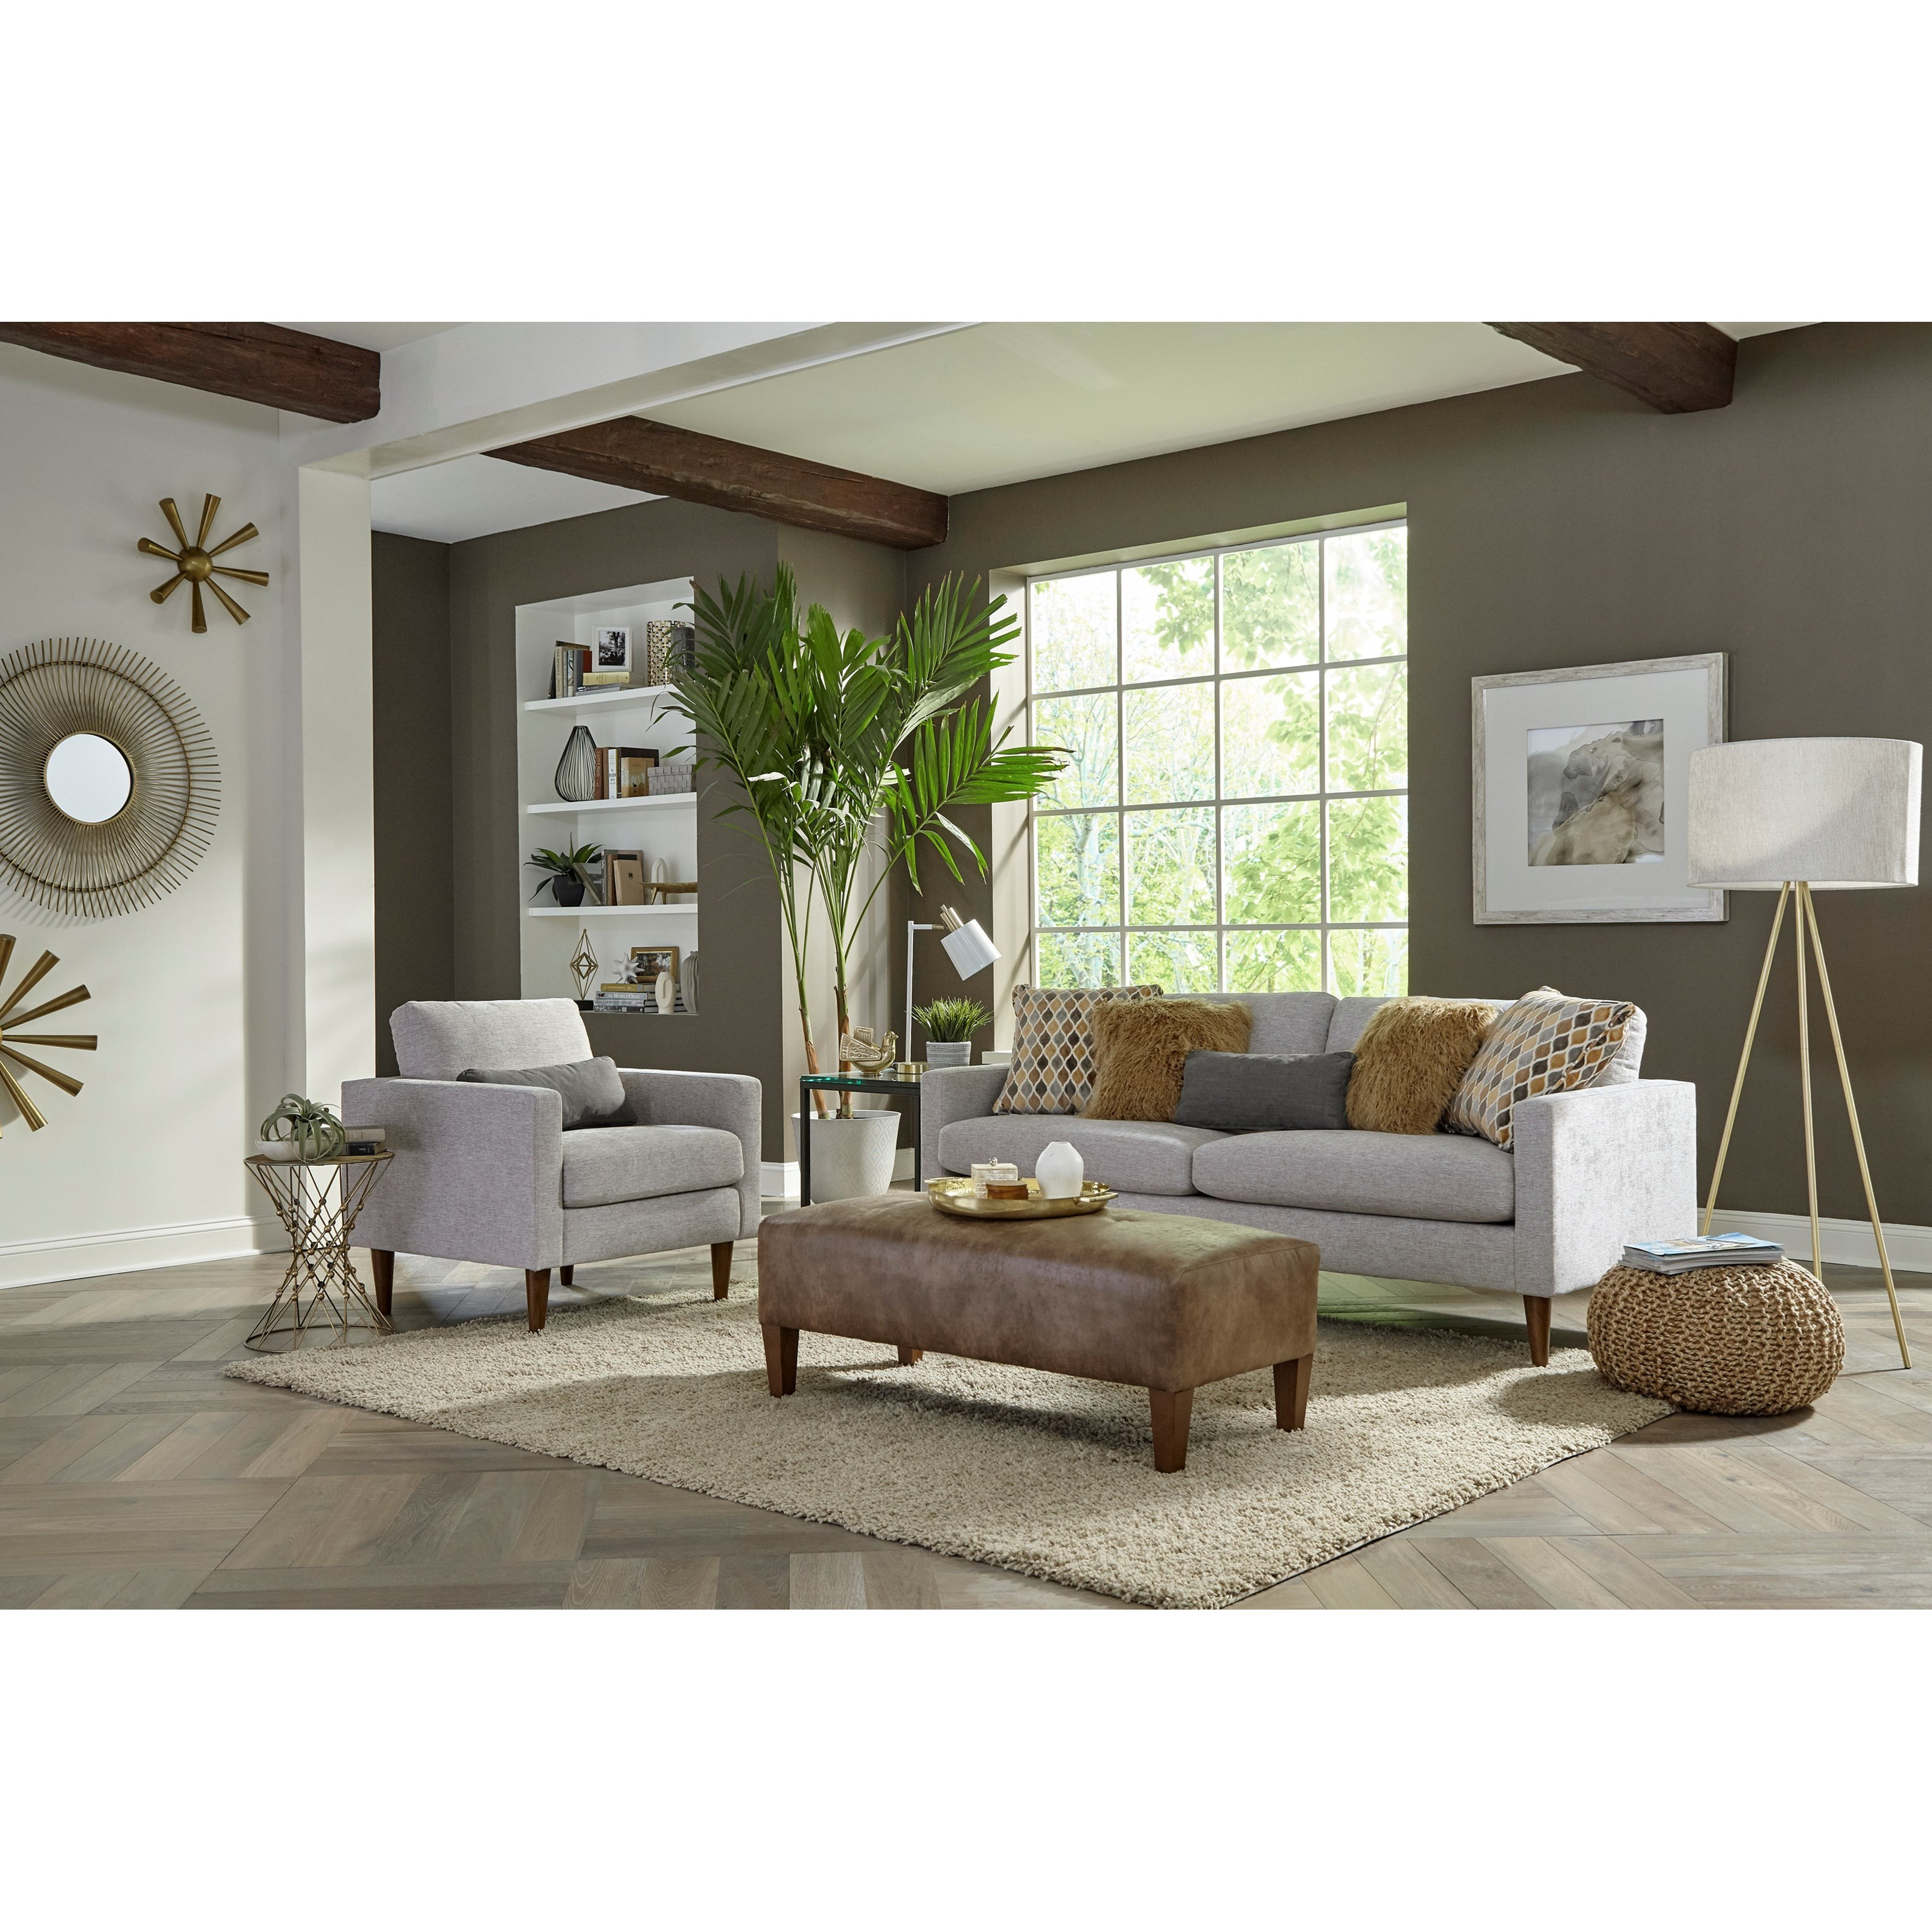 Best Home Furnishings Trafton S10 Living Room Group 2 Living Room Group O Dunk O Bright Furniture Stationary Living Room Groups